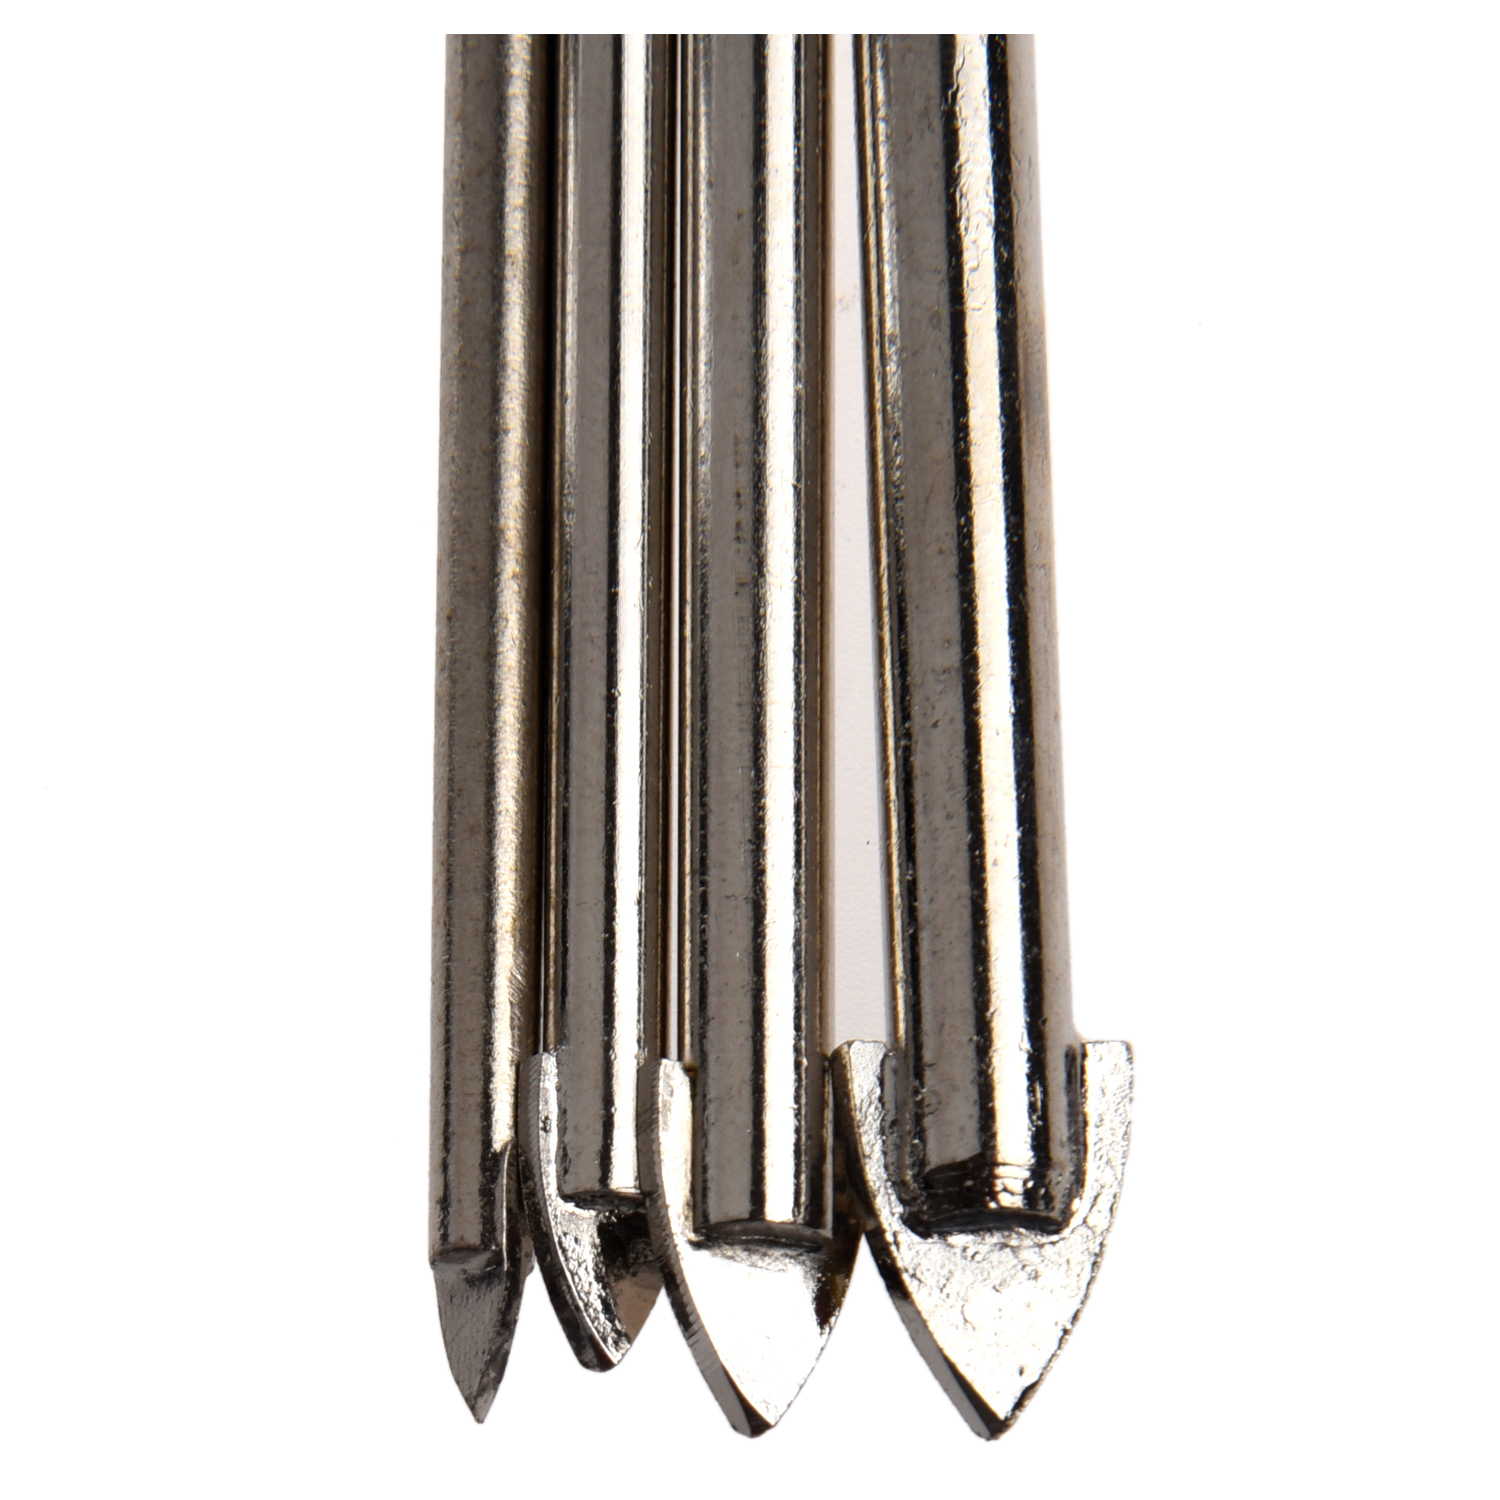 Jfbl glass drill metal ceramic tile drill bits 425 to 25 in jfbl glass drill metal ceramic tile drill bits 425 to 25 in drill bits from tools on aliexpress alibaba group dailygadgetfo Gallery